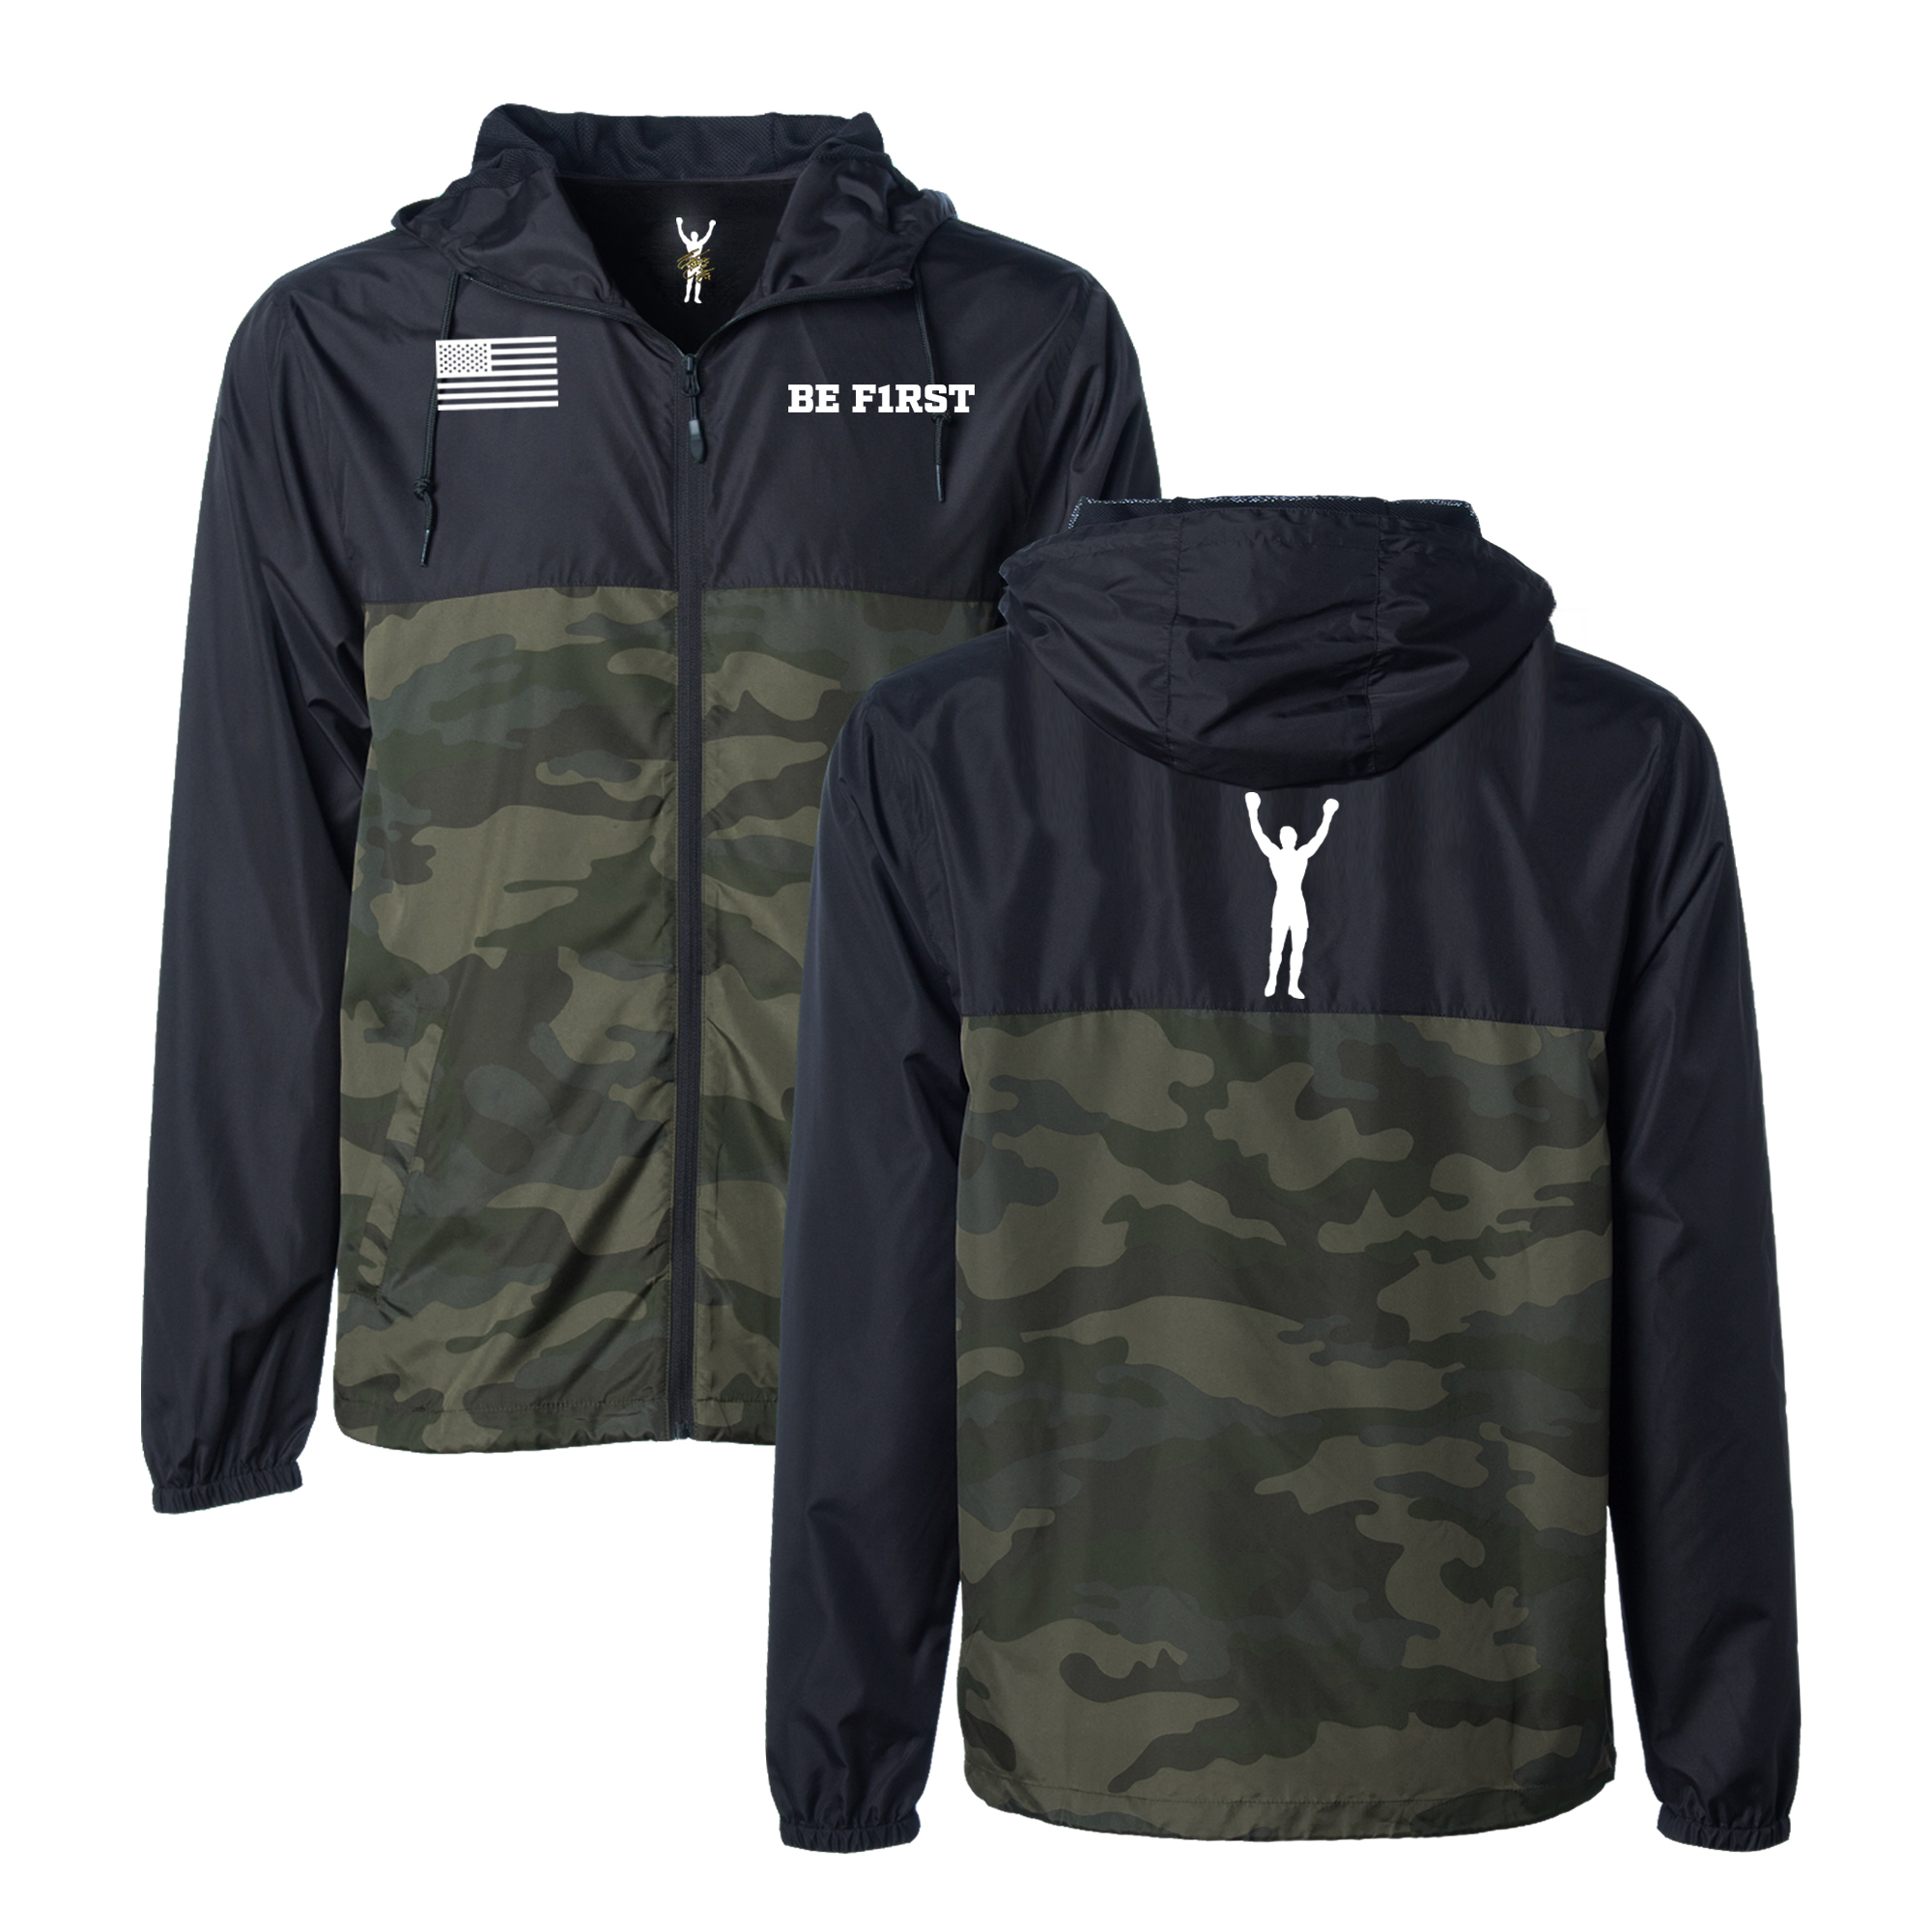 BE F1RST Windbreaker